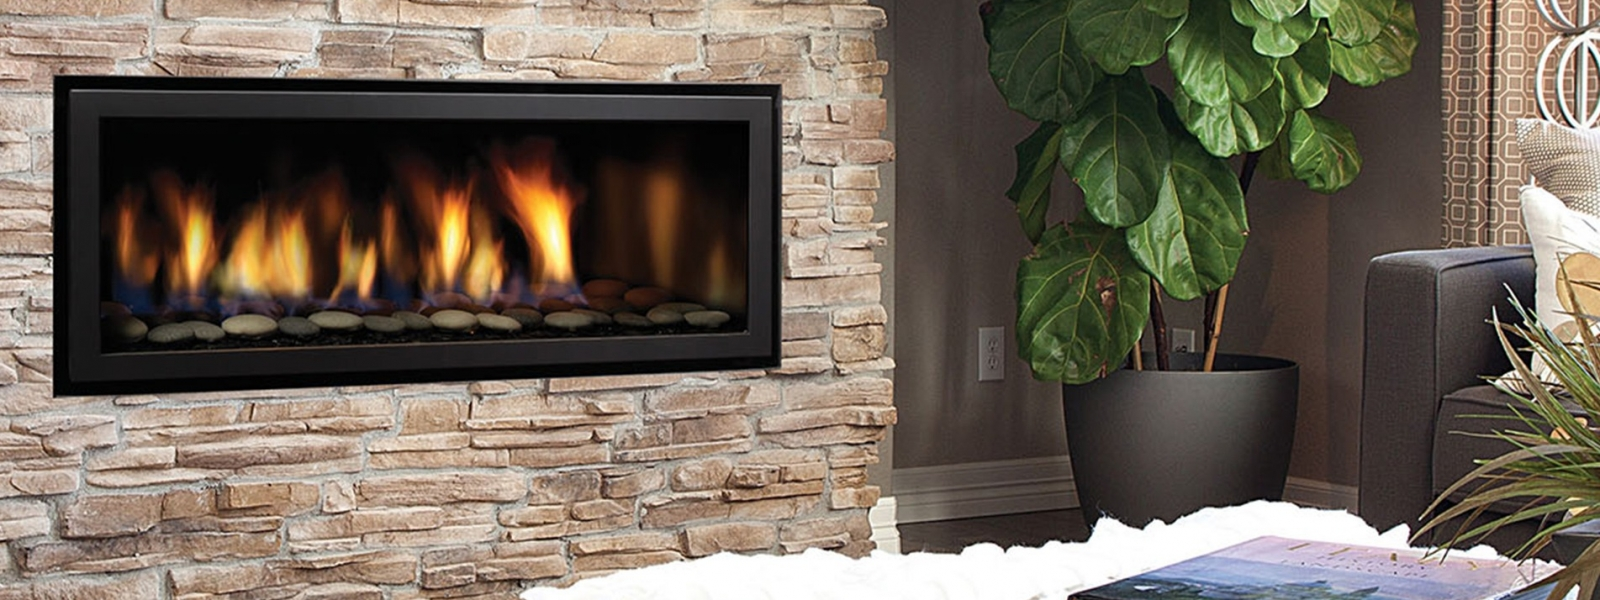 """Nordic Stove and Fireplace is fabulous! Super knowledgeable and helpful."""